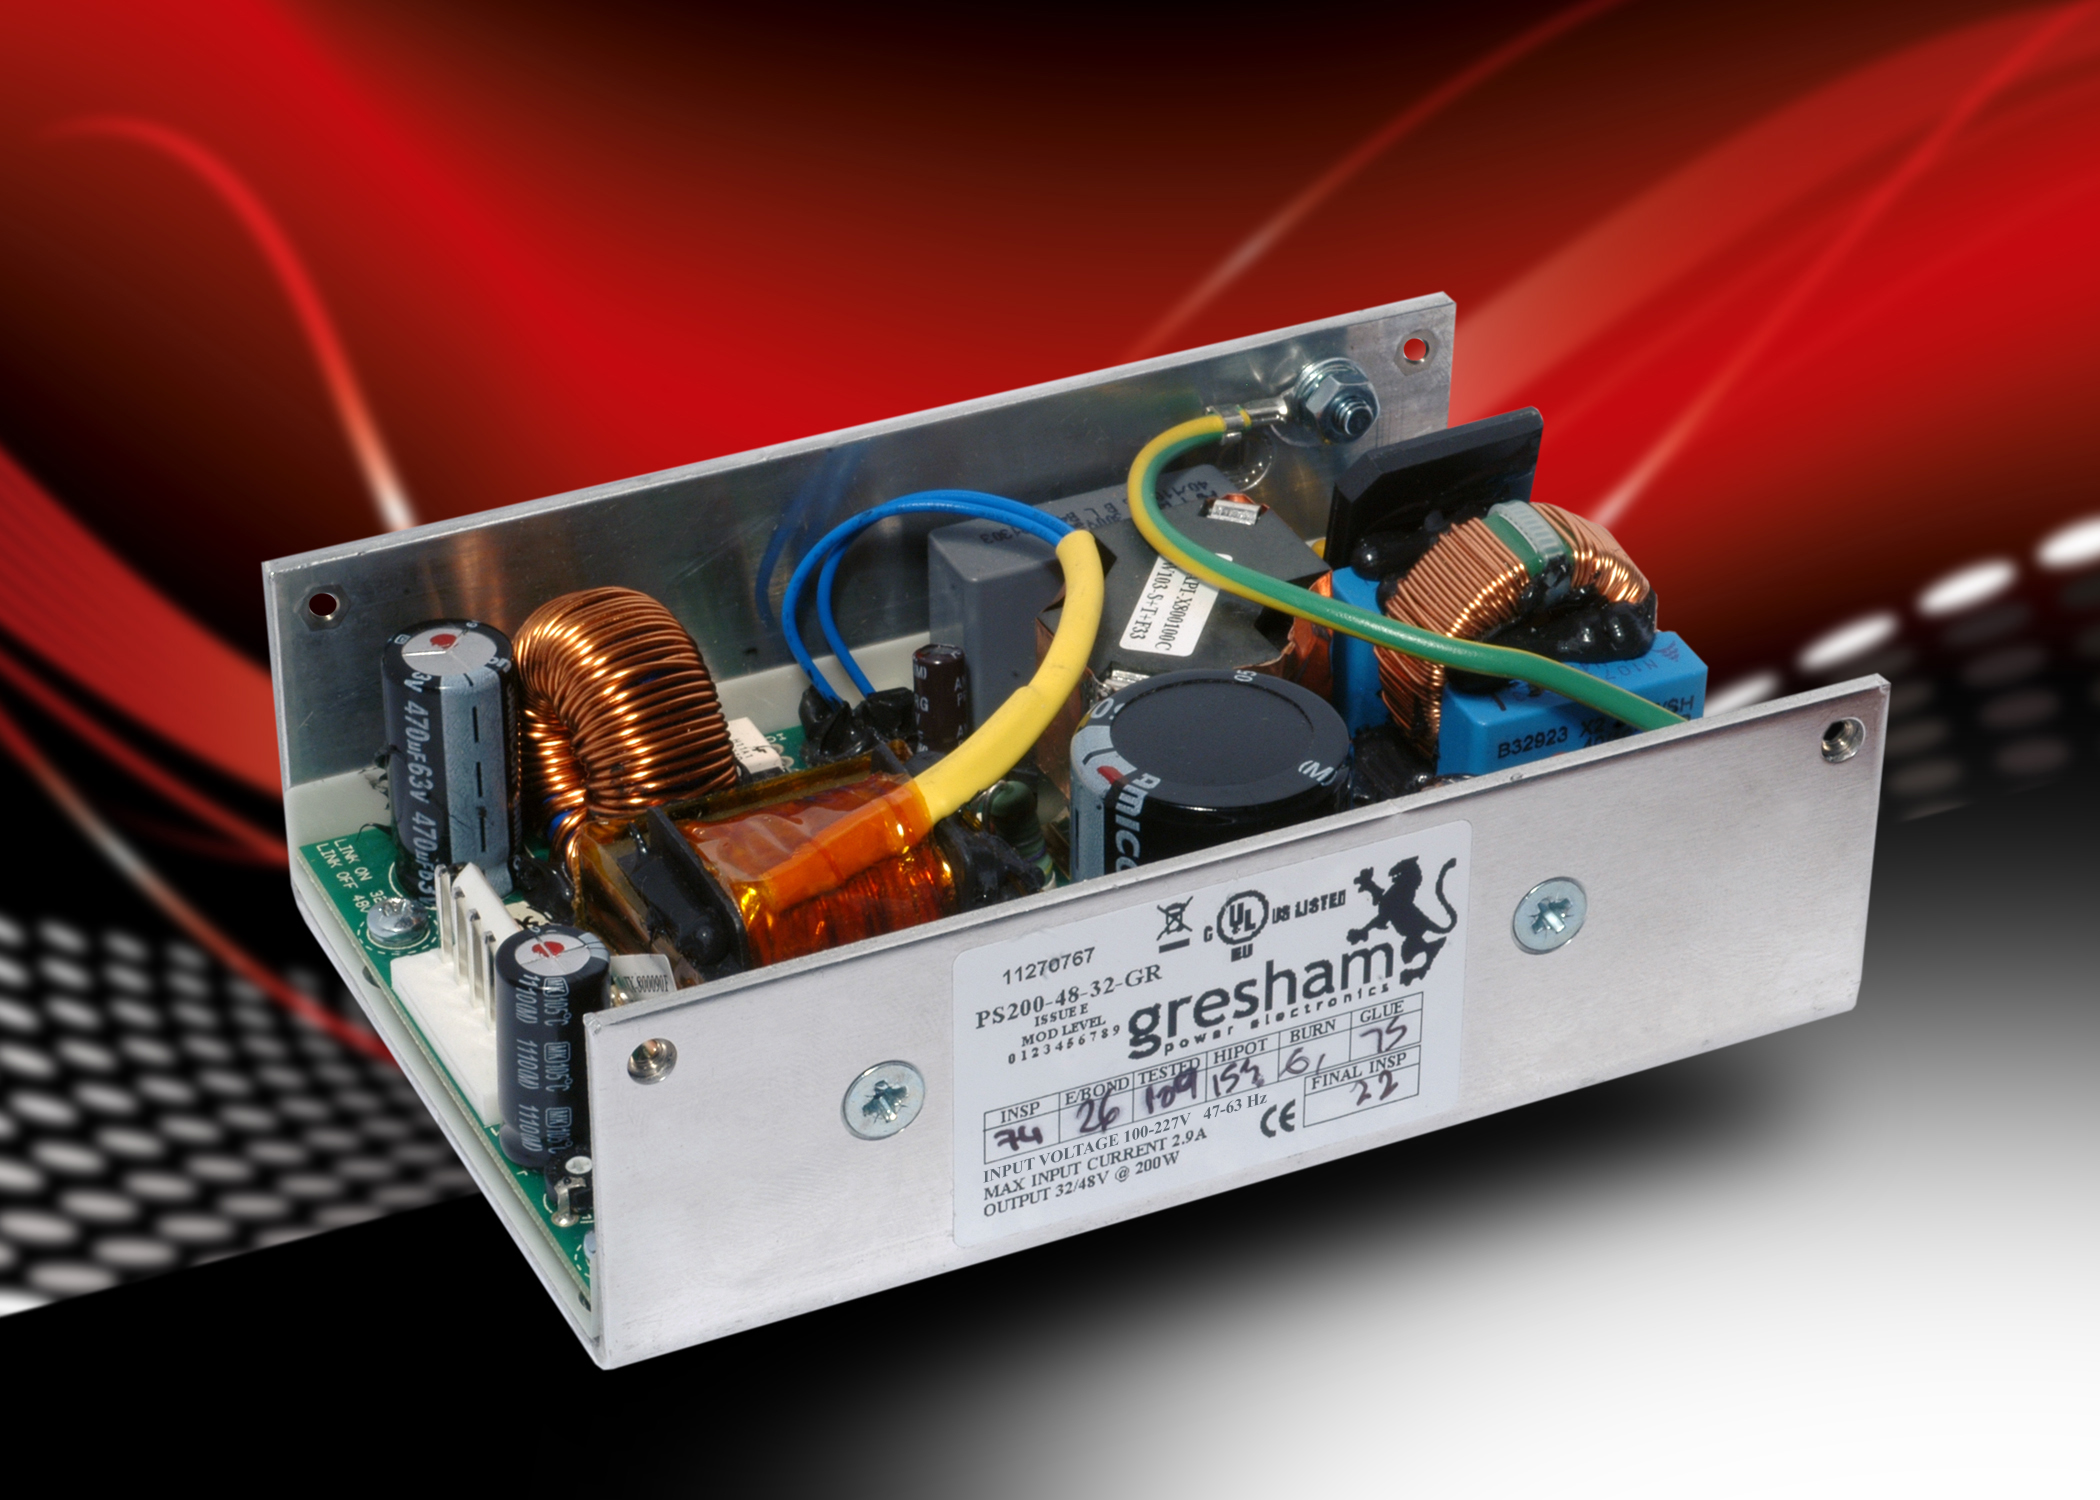 Custom Designed Power Supplies Engineer Live 200w Atx Supply Circuit Gresham Electronics Is Offering Customers A New Uk Based Design And Manufacturing Service